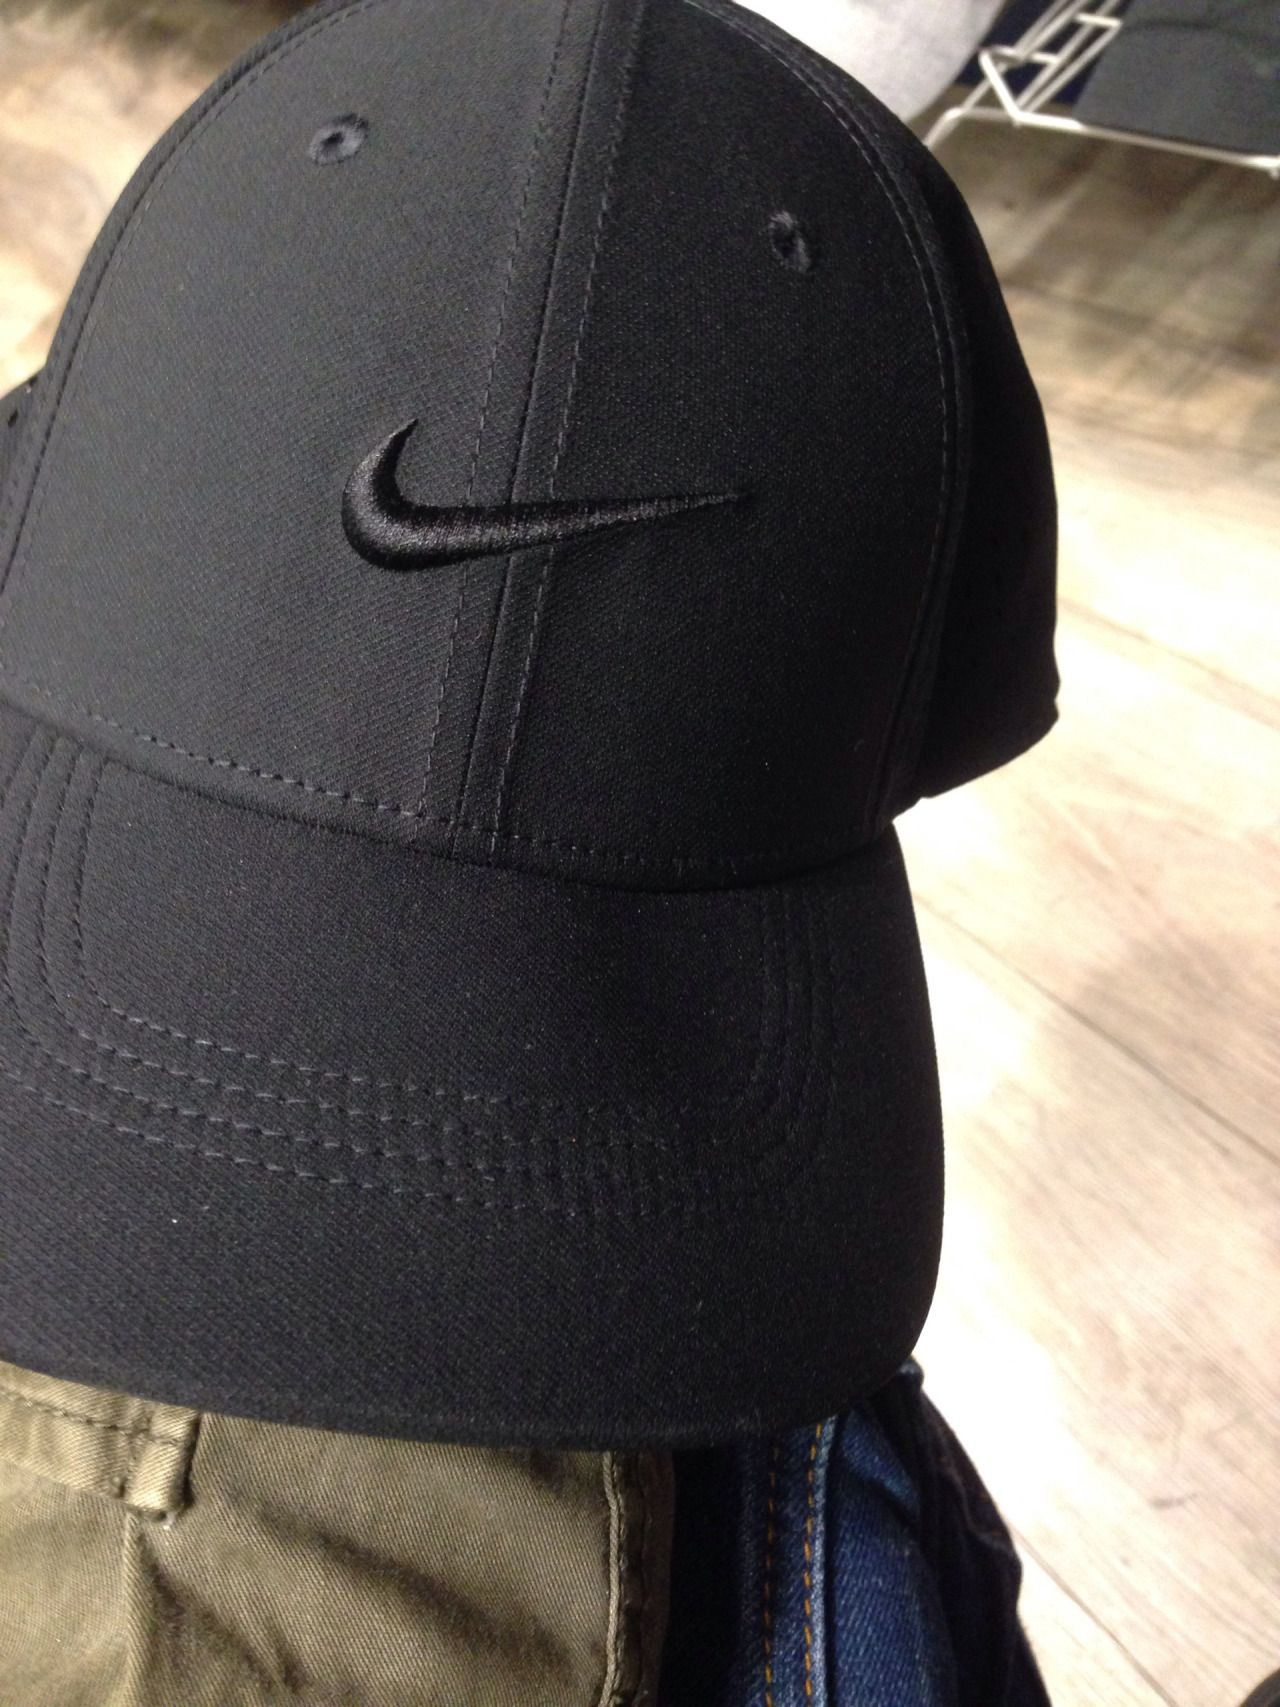 All black Nike hat